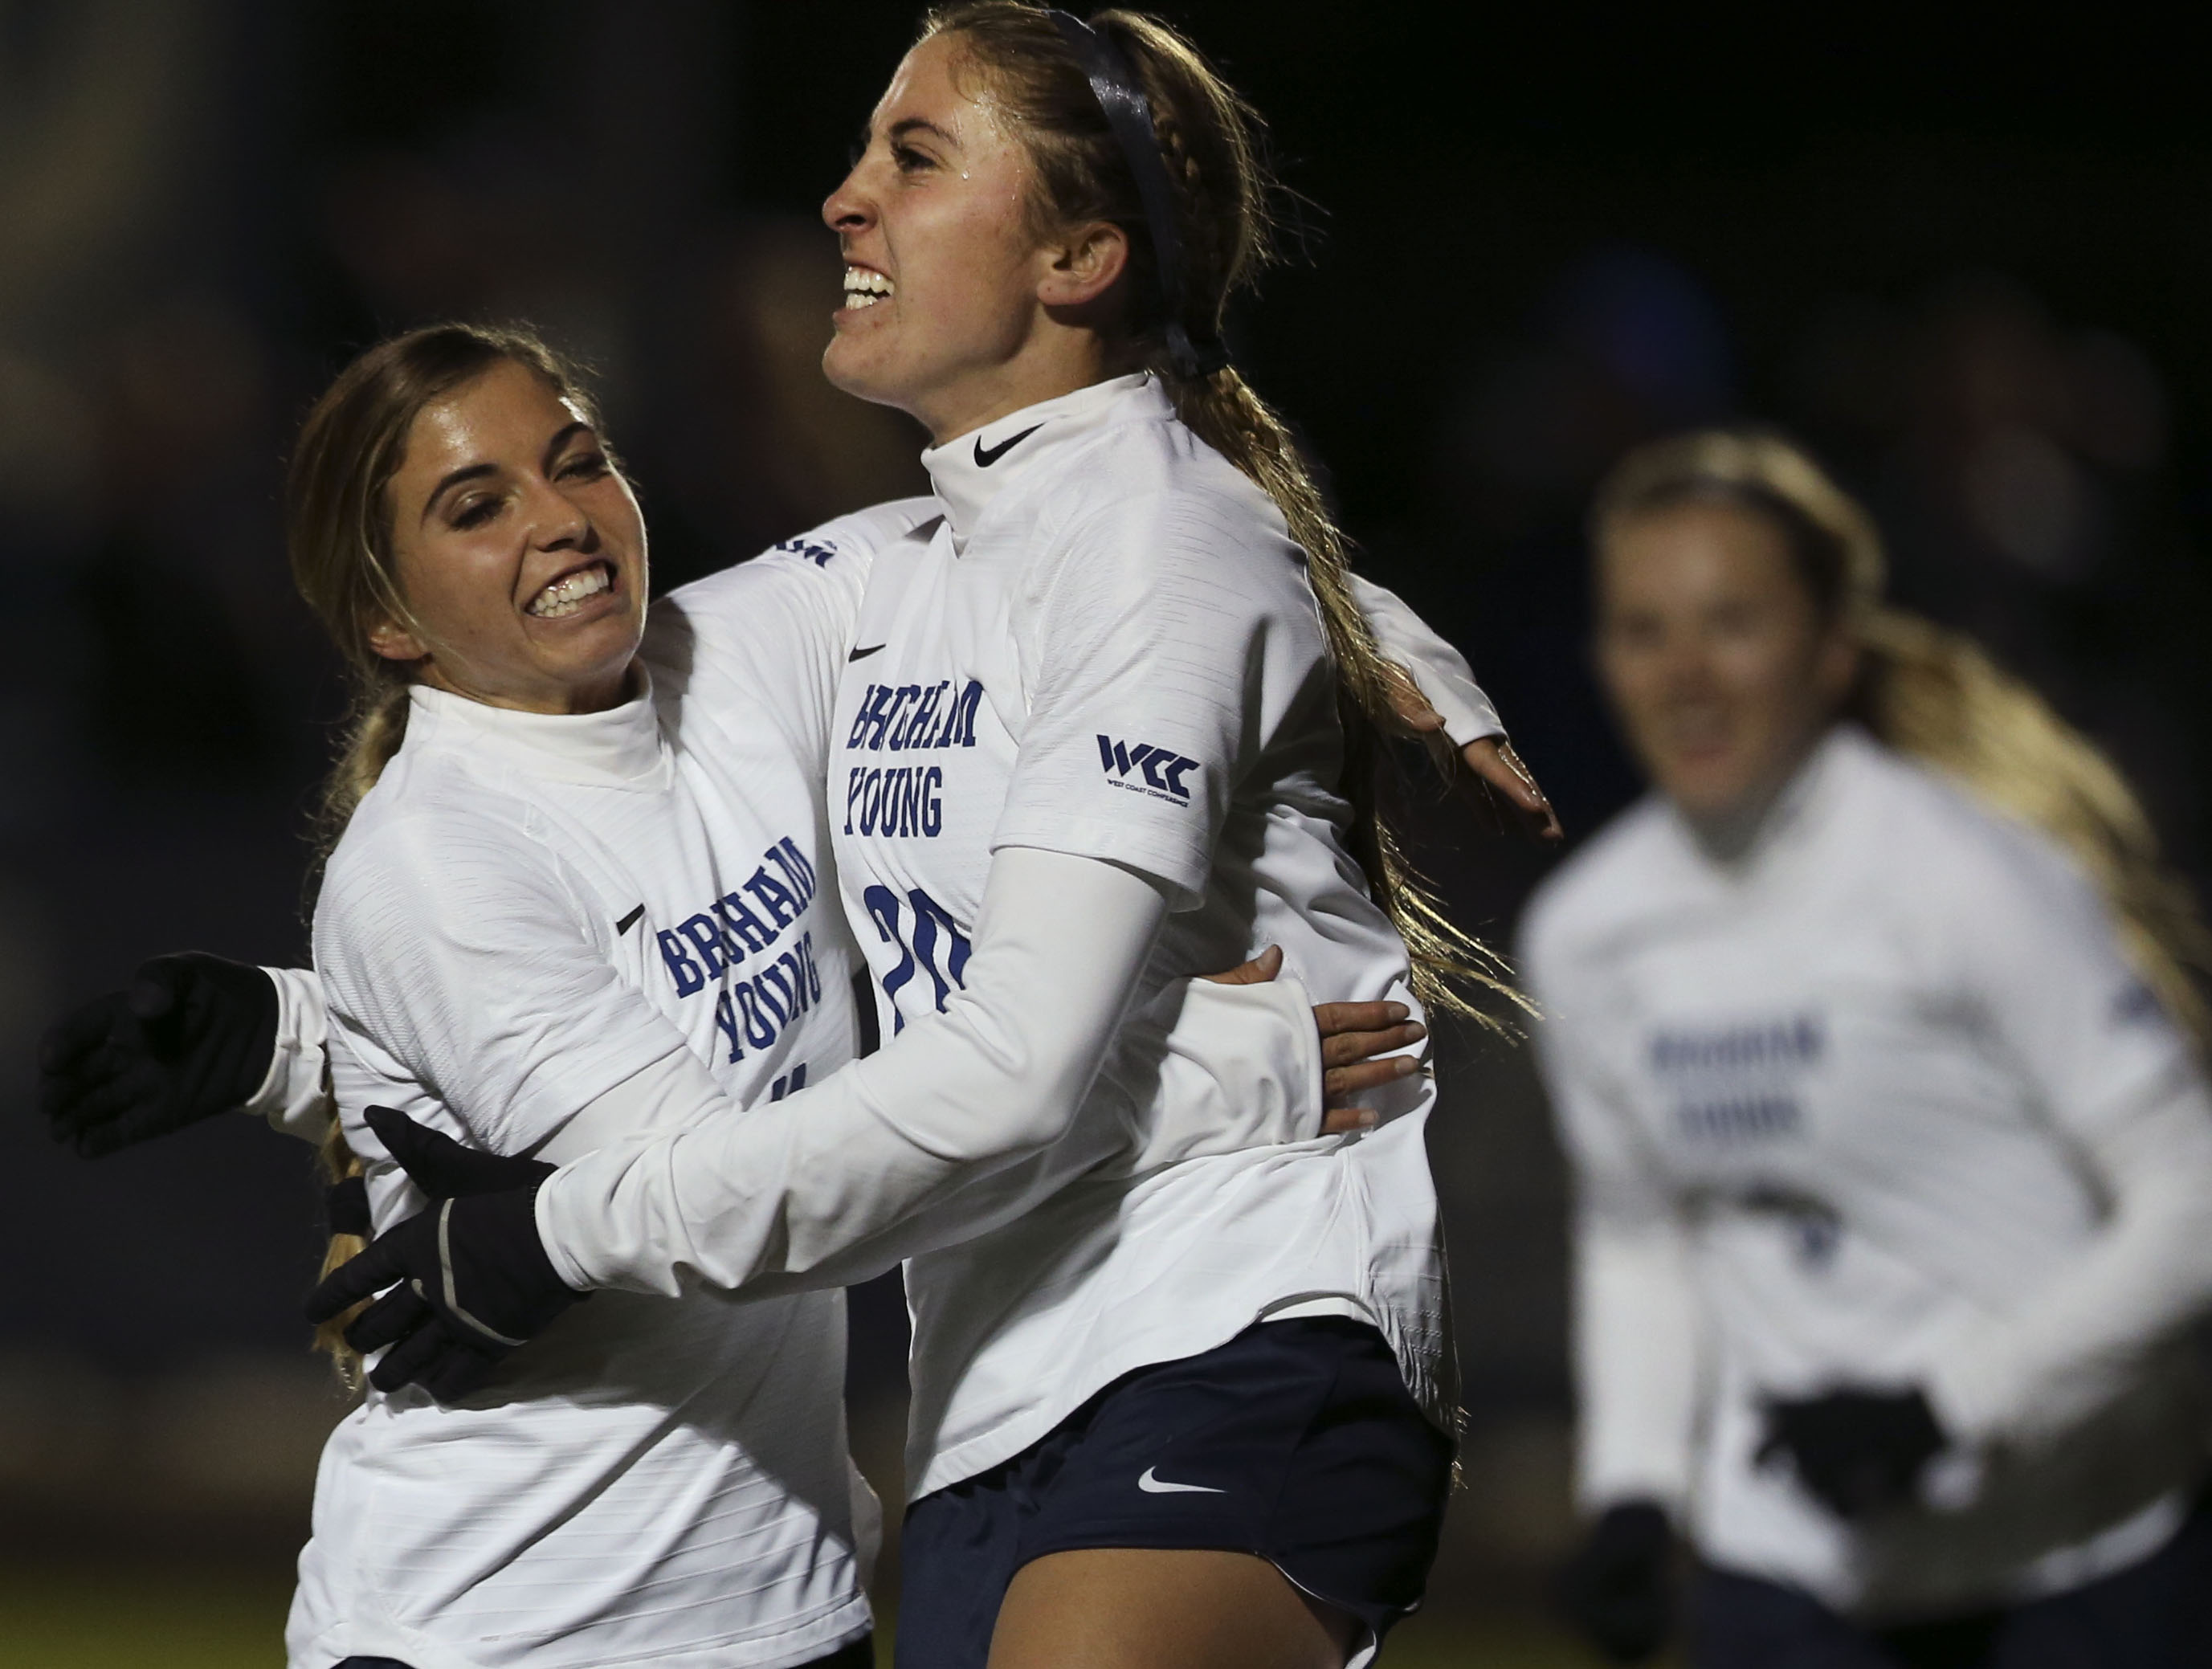 BYU's Lizzy Braby and Cameron Tucker celebrate Tucker's goal against Louisville during the NCAA soccer tournament at BYU in Provo on Thursday, Nov. 21, 2019.